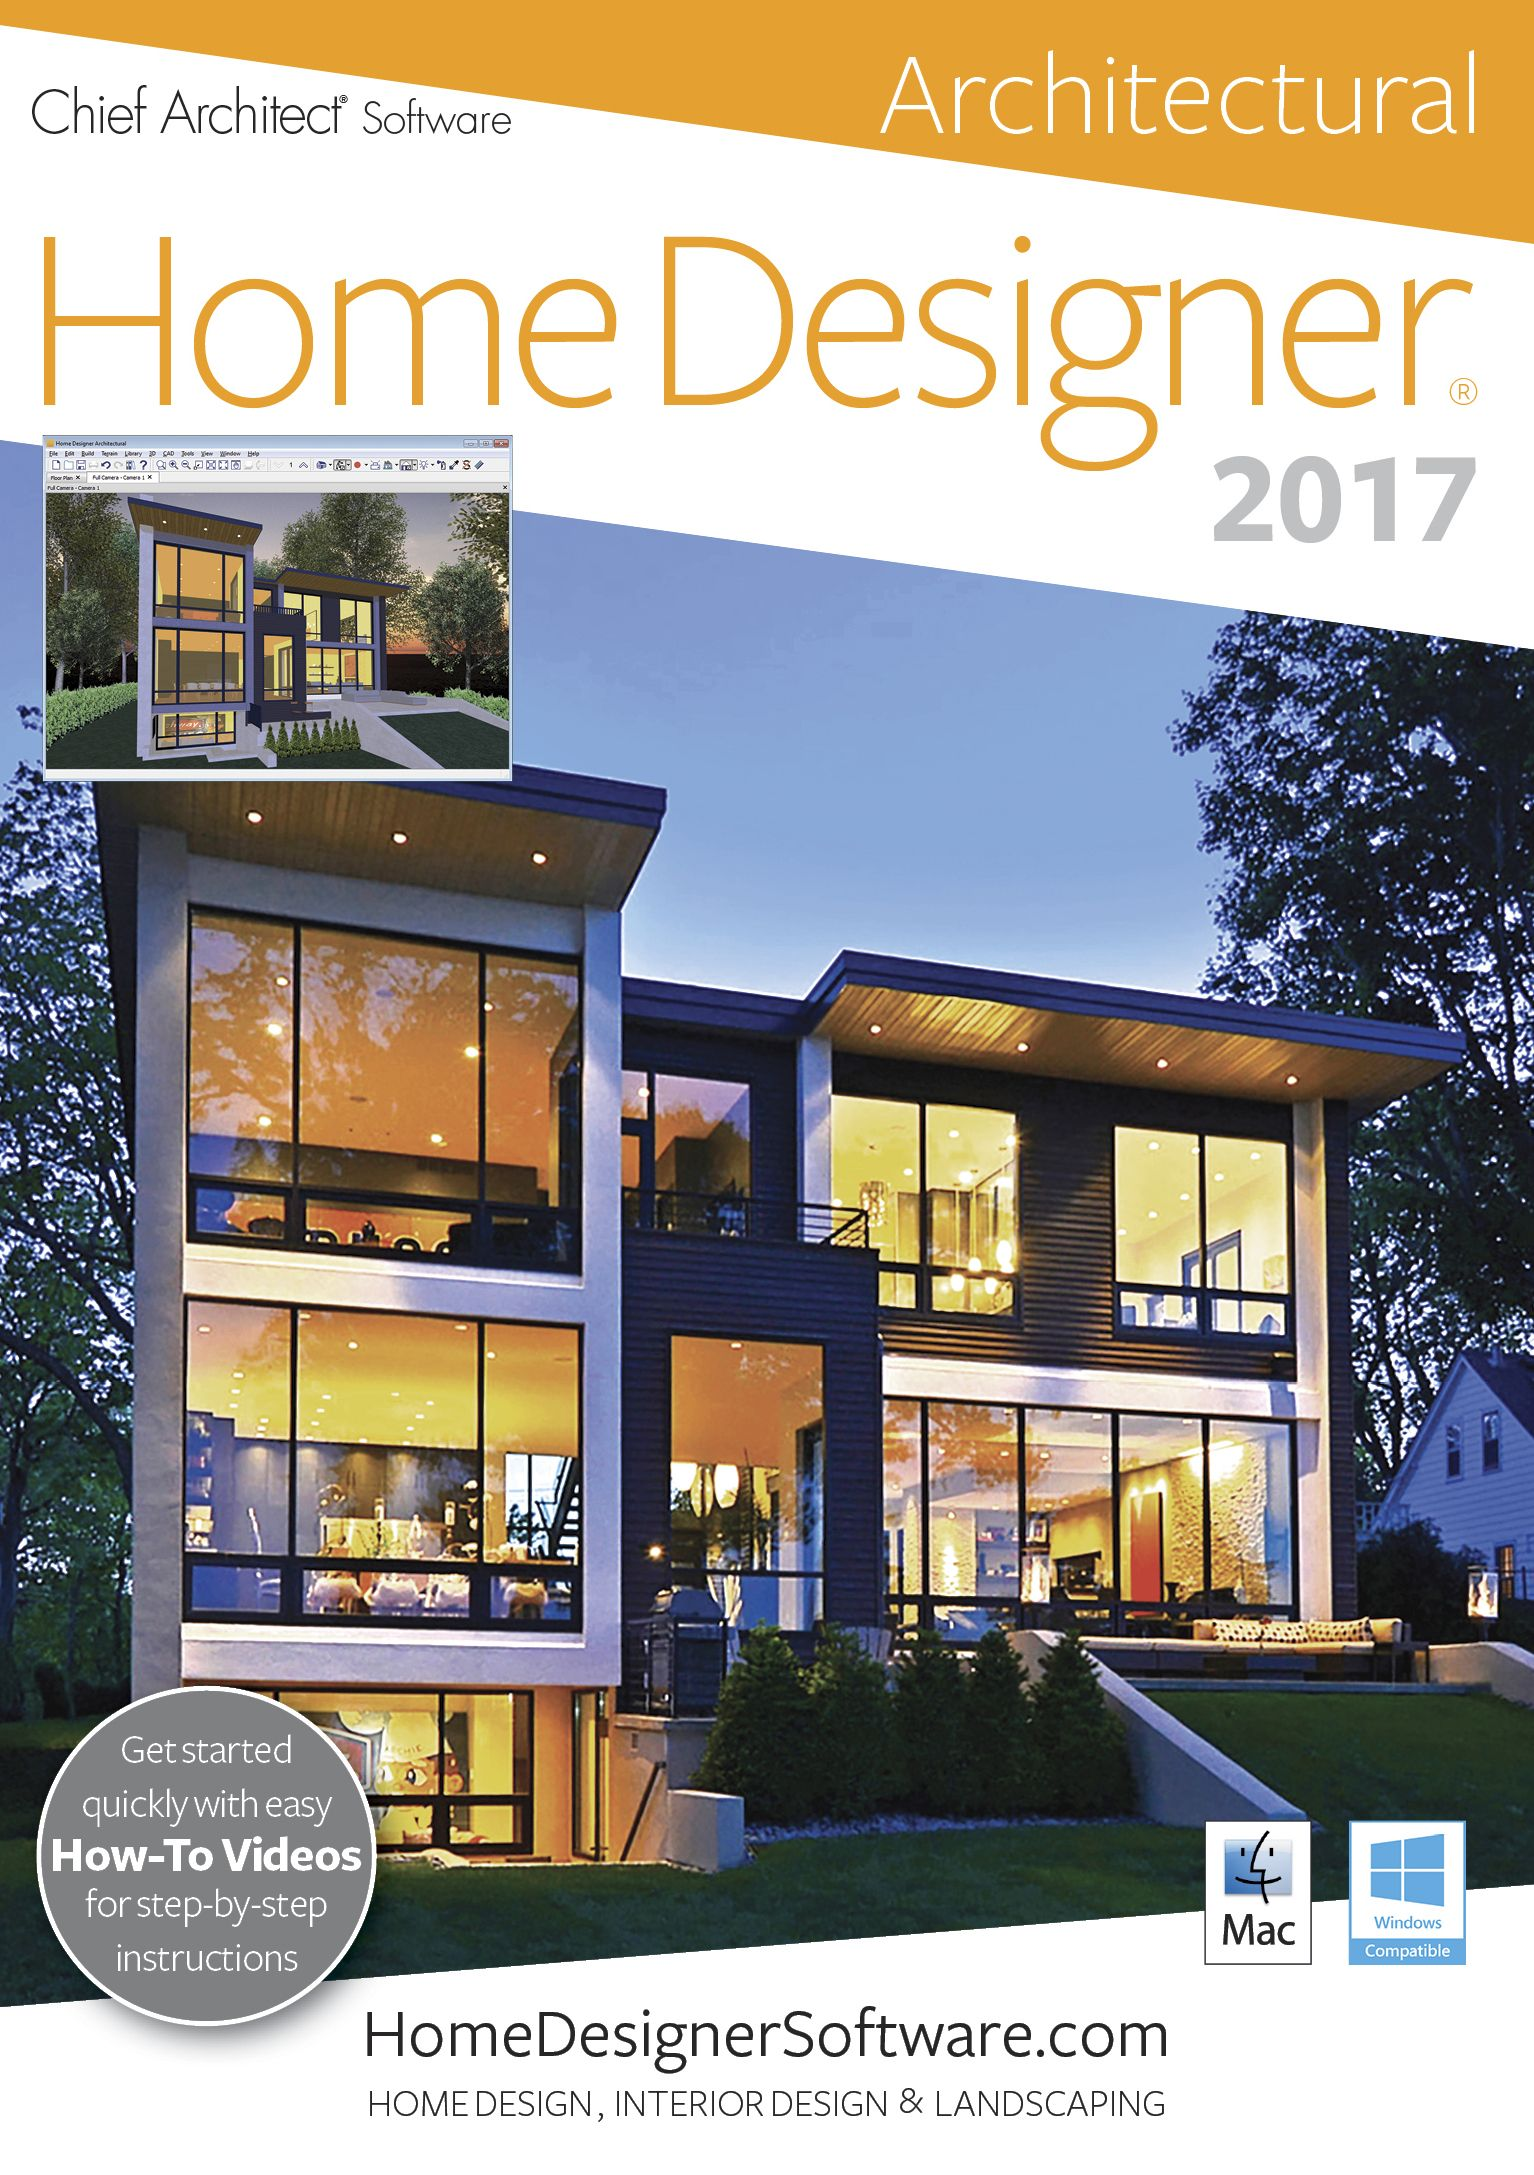 Home designer architectural pc by chief architect in software  apps also bmw navigation dvd road map europe professional password rh uk pinterest